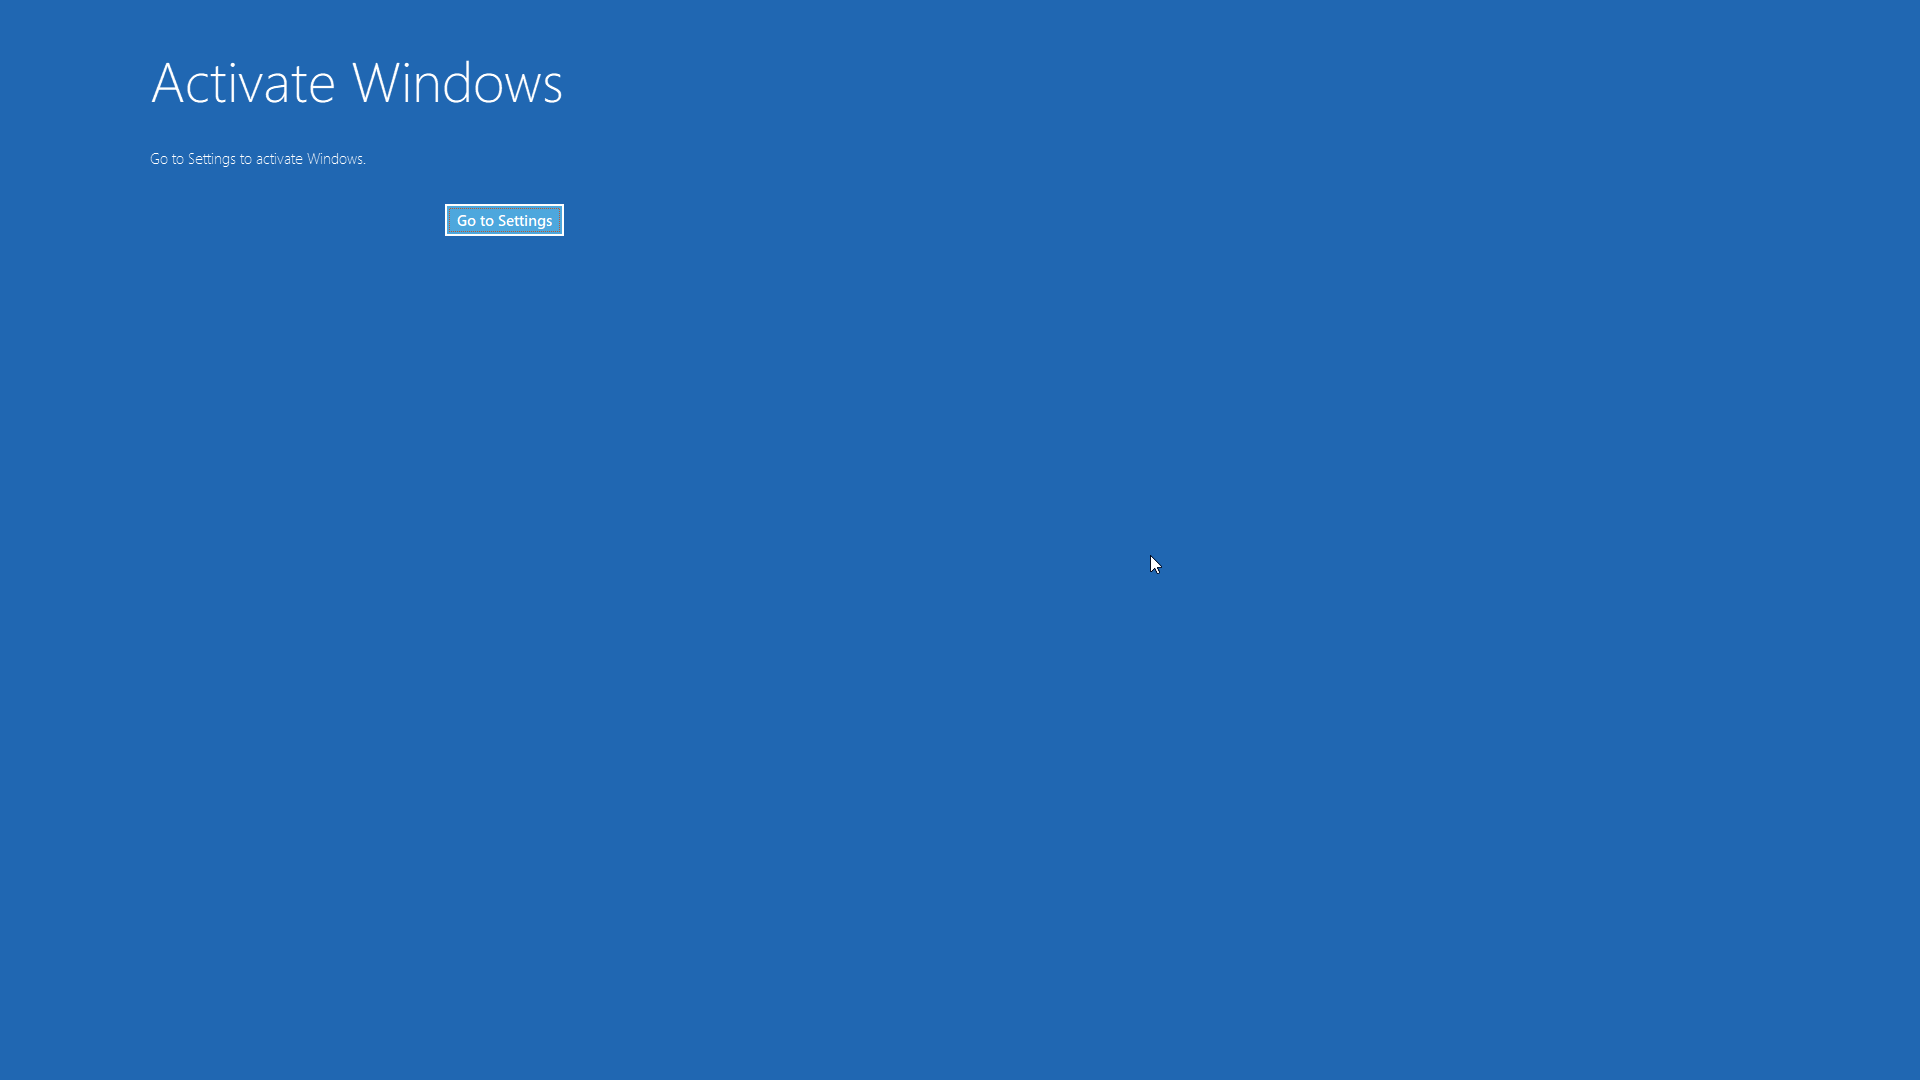 Windows activation screen in settings is blank, blue